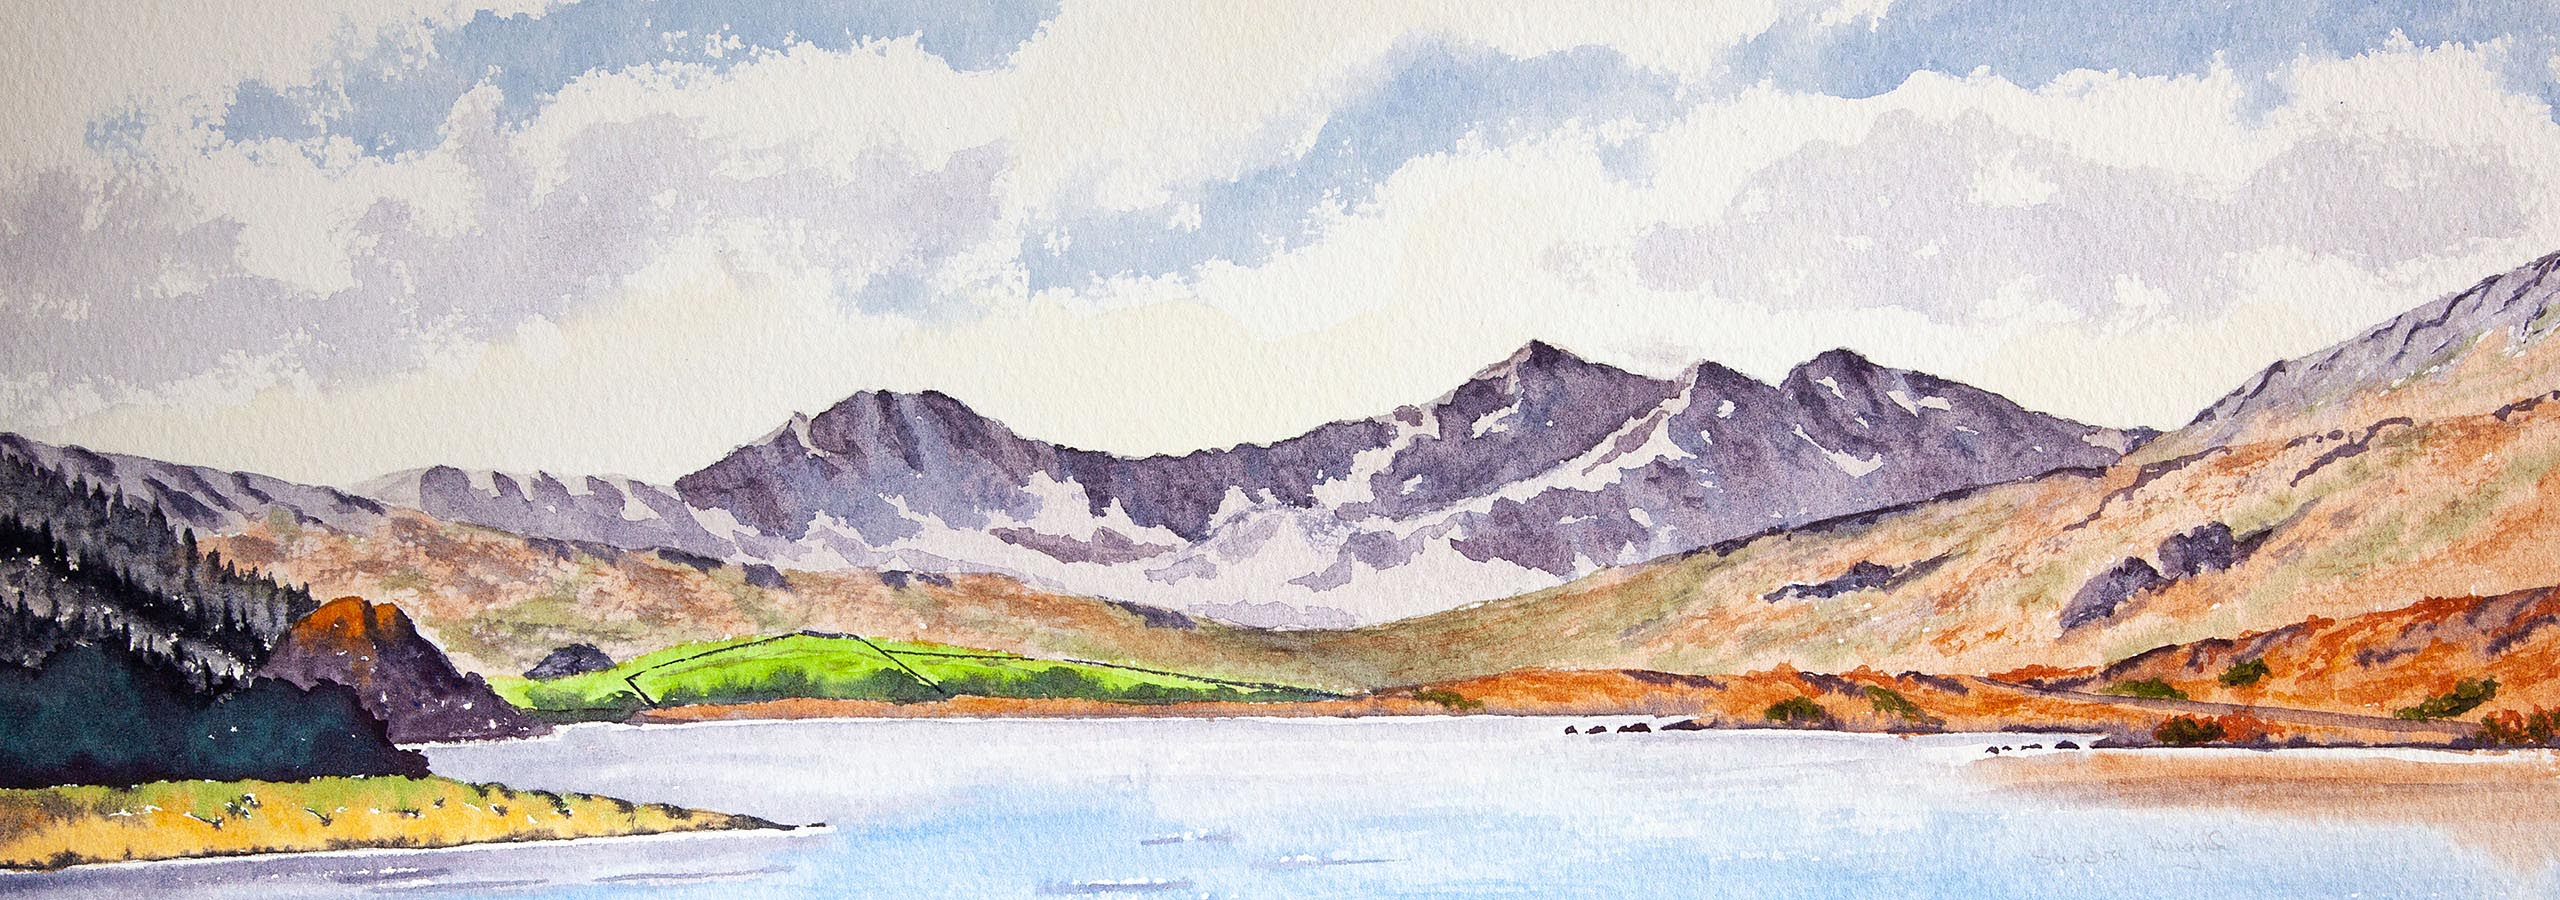 Snowdon Horseshoe painted in Watercolours